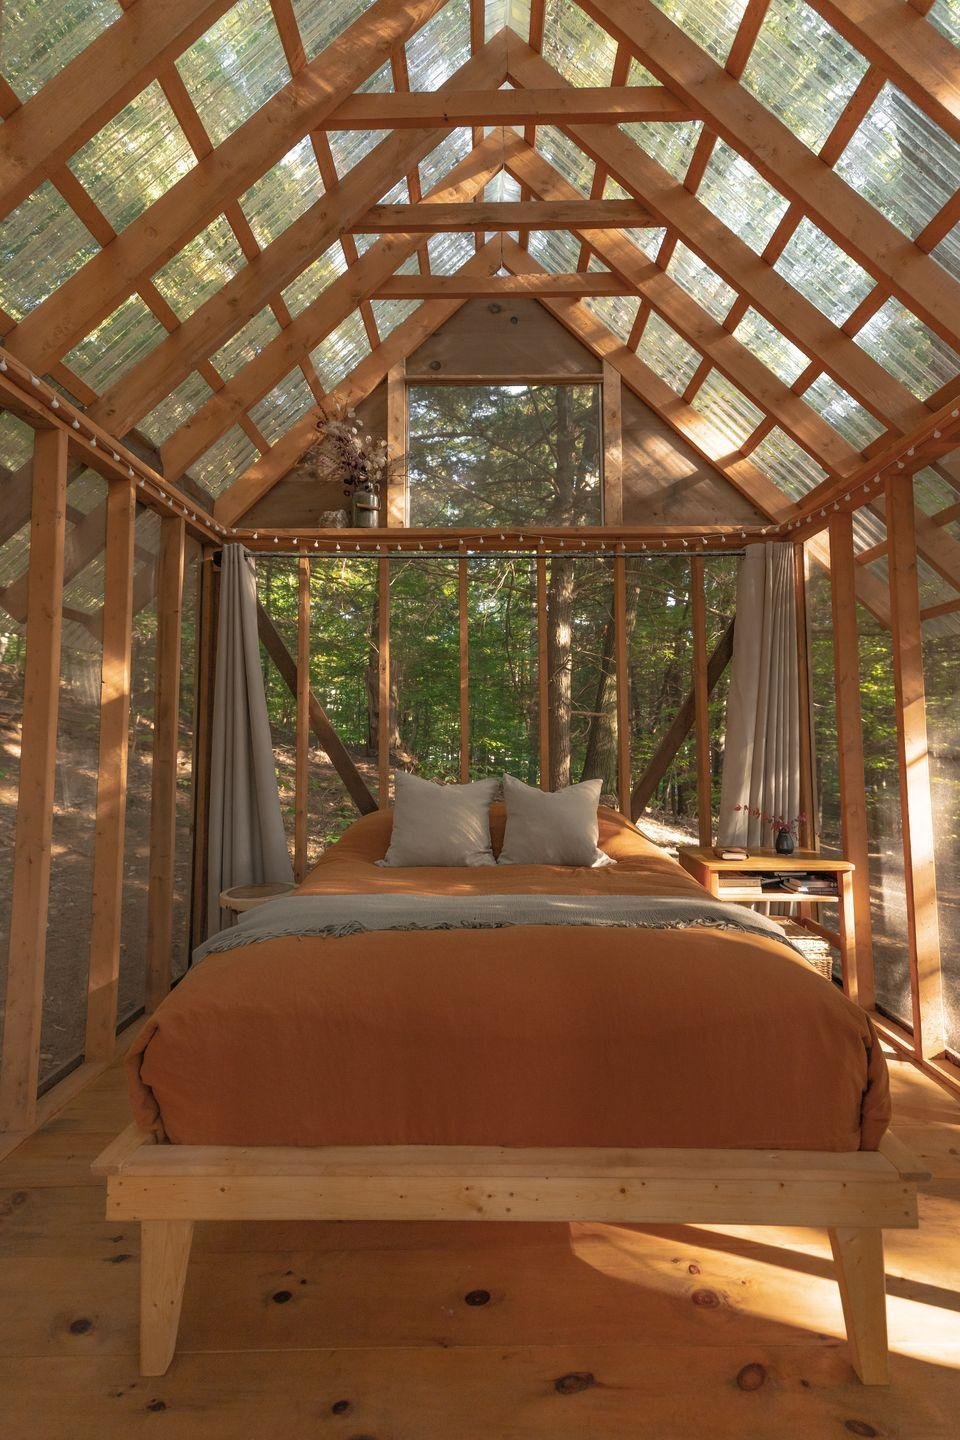 "<p>Tucked away in a forested grove on a flower farm, this glass cabin brings a whole new meaning to the word glamping. From hiking to paddling and rural road biking, it's the perfect escape for those looking for a little adventure. </p><p><a class=""link rapid-noclick-resp"" href=""https://go.redirectingat.com?id=127X1599956&url=https%3A%2F%2Fwww.airbnb.co.uk%2Frooms%2F17072599&sref=https%3A%2F%2Fwww.redonline.co.uk%2Ftravel%2Finspiration%2Fg35466875%2Fairbnb-most-liked-homes%2F"" rel=""nofollow noopener"" target=""_blank"" data-ylk=""slk:MORE INFO"">MORE INFO</a></p>"